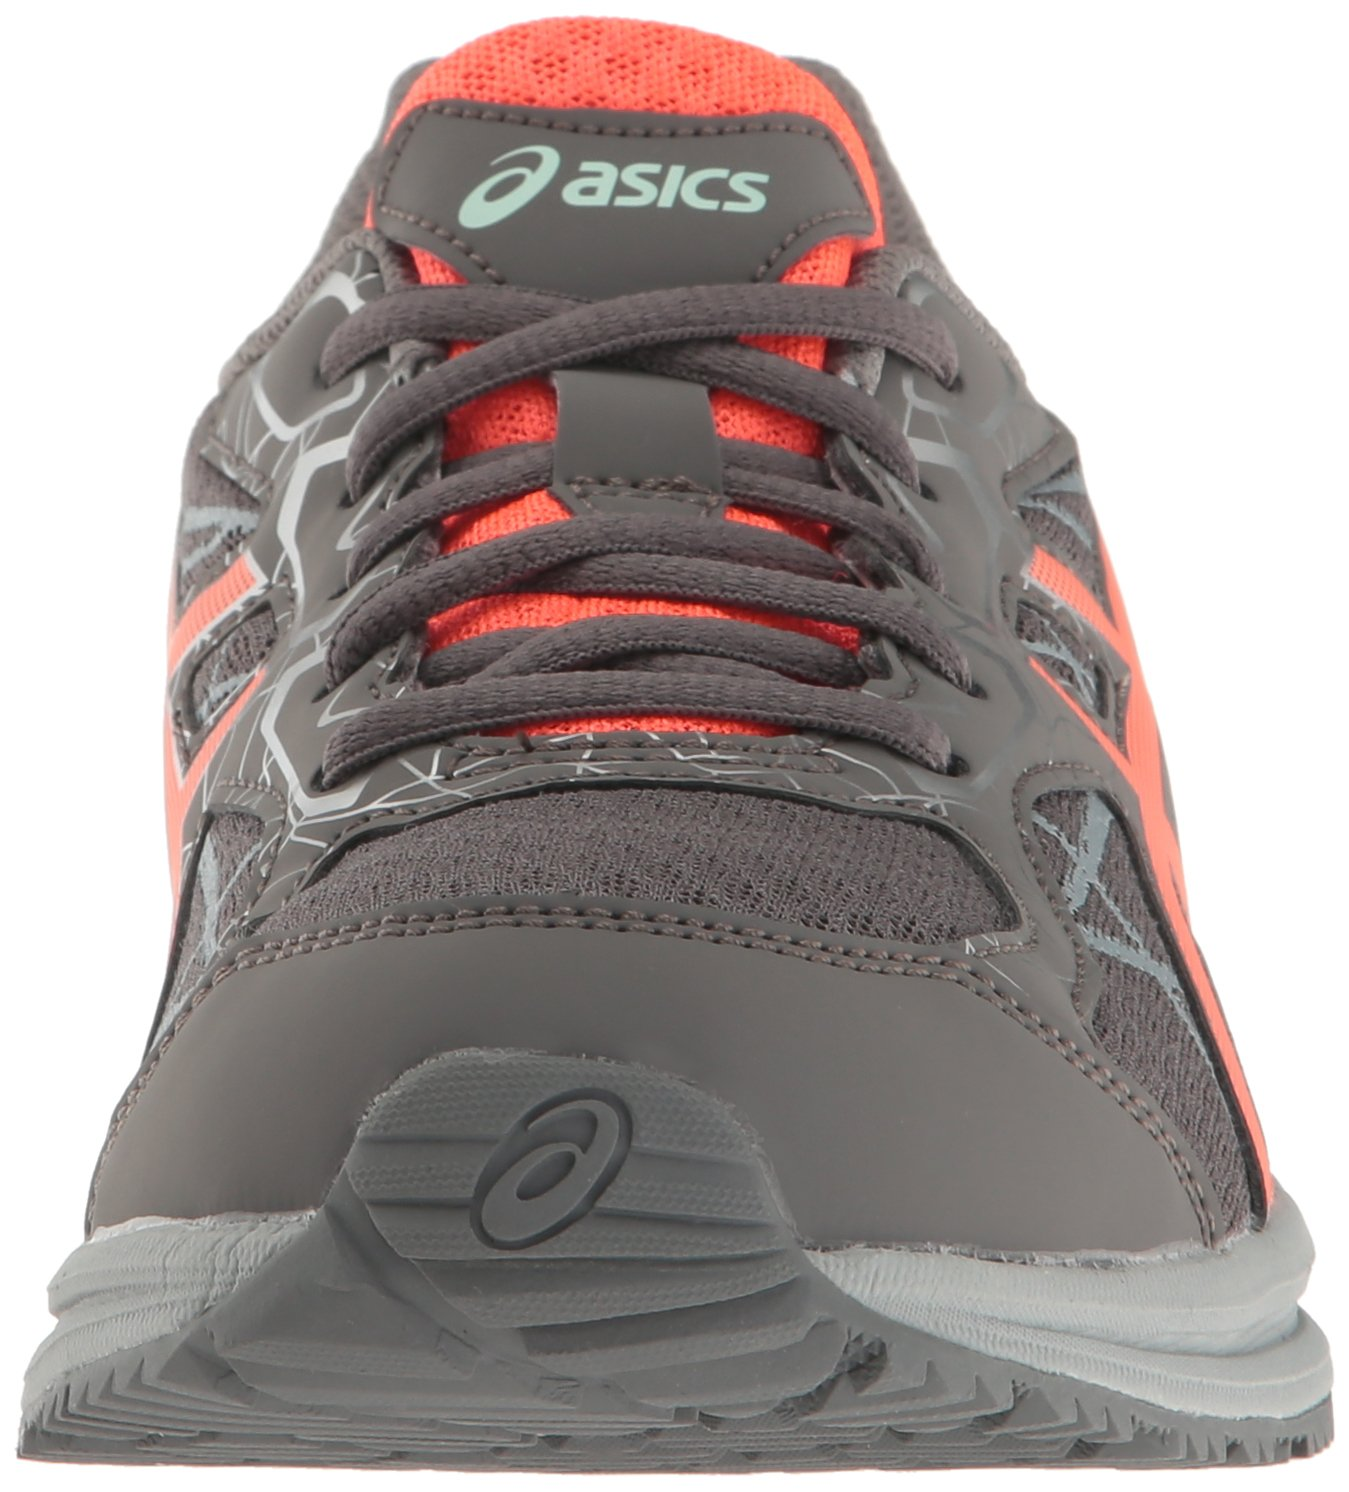 Zapatillas de fonctionnement 15573 Carbon Endurant para fonctionnement mujer ASICS 15573 Carbon 565a8b9 - resepmasakannusantara.website